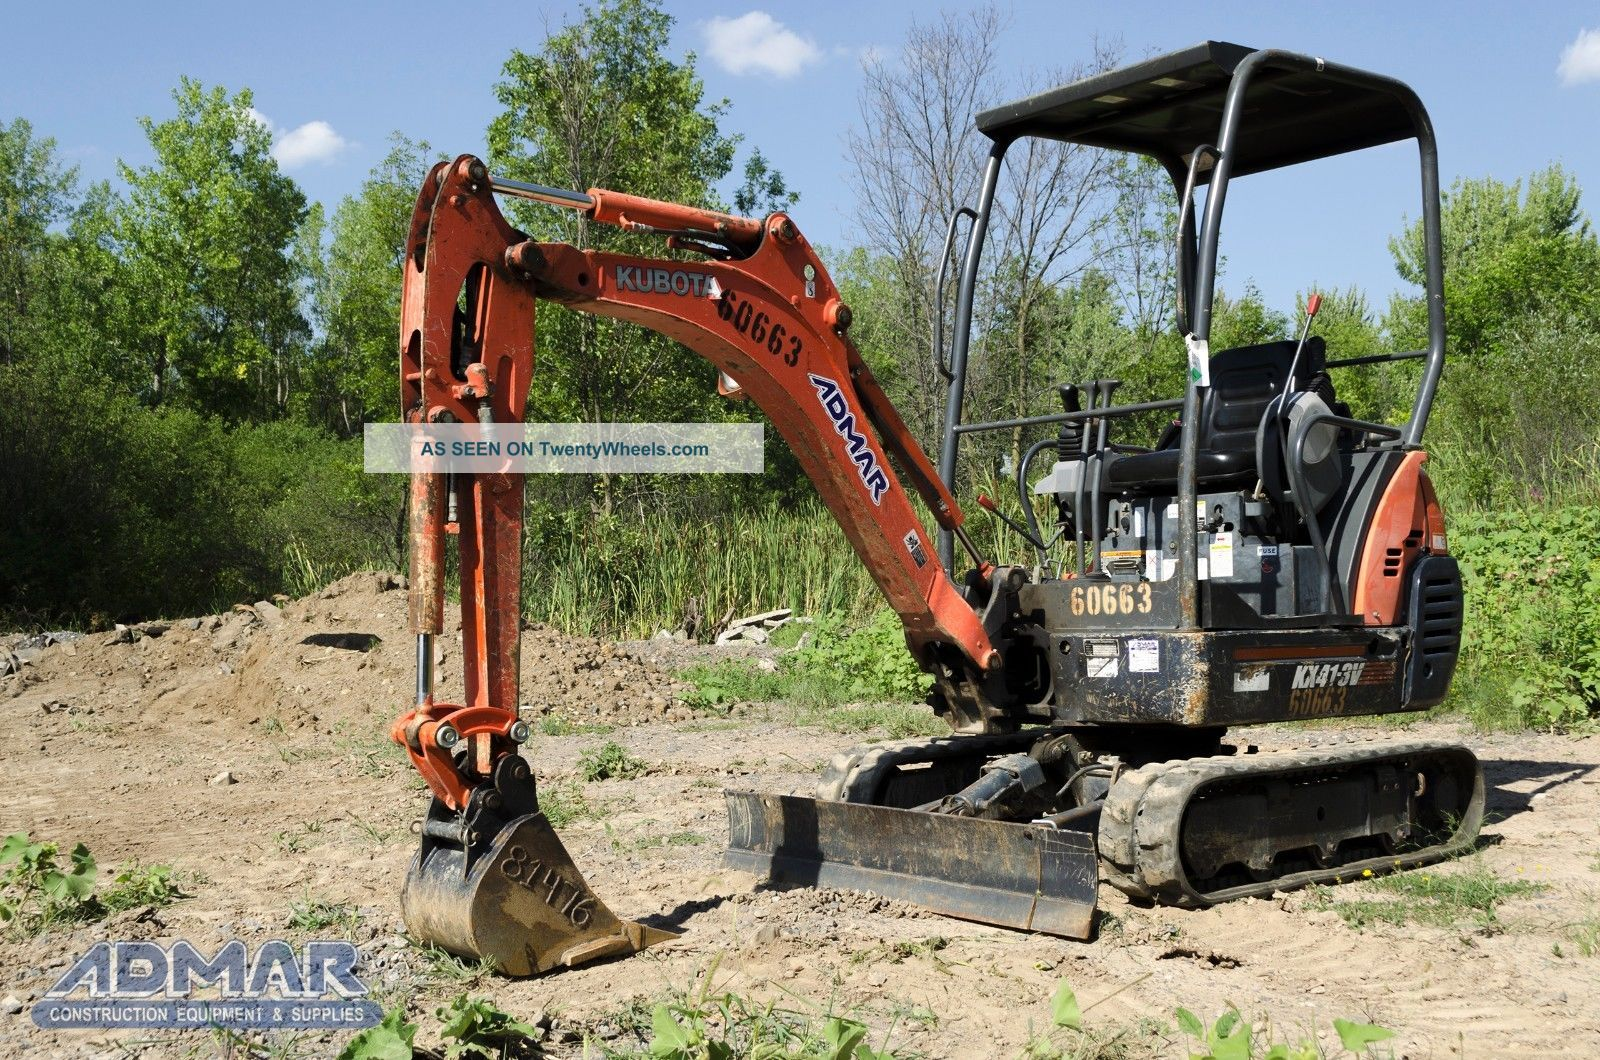 2011 Kubota Kx41vr1t4 Excavator,  With Open Cab,  And Standard Blade. Excavators photo